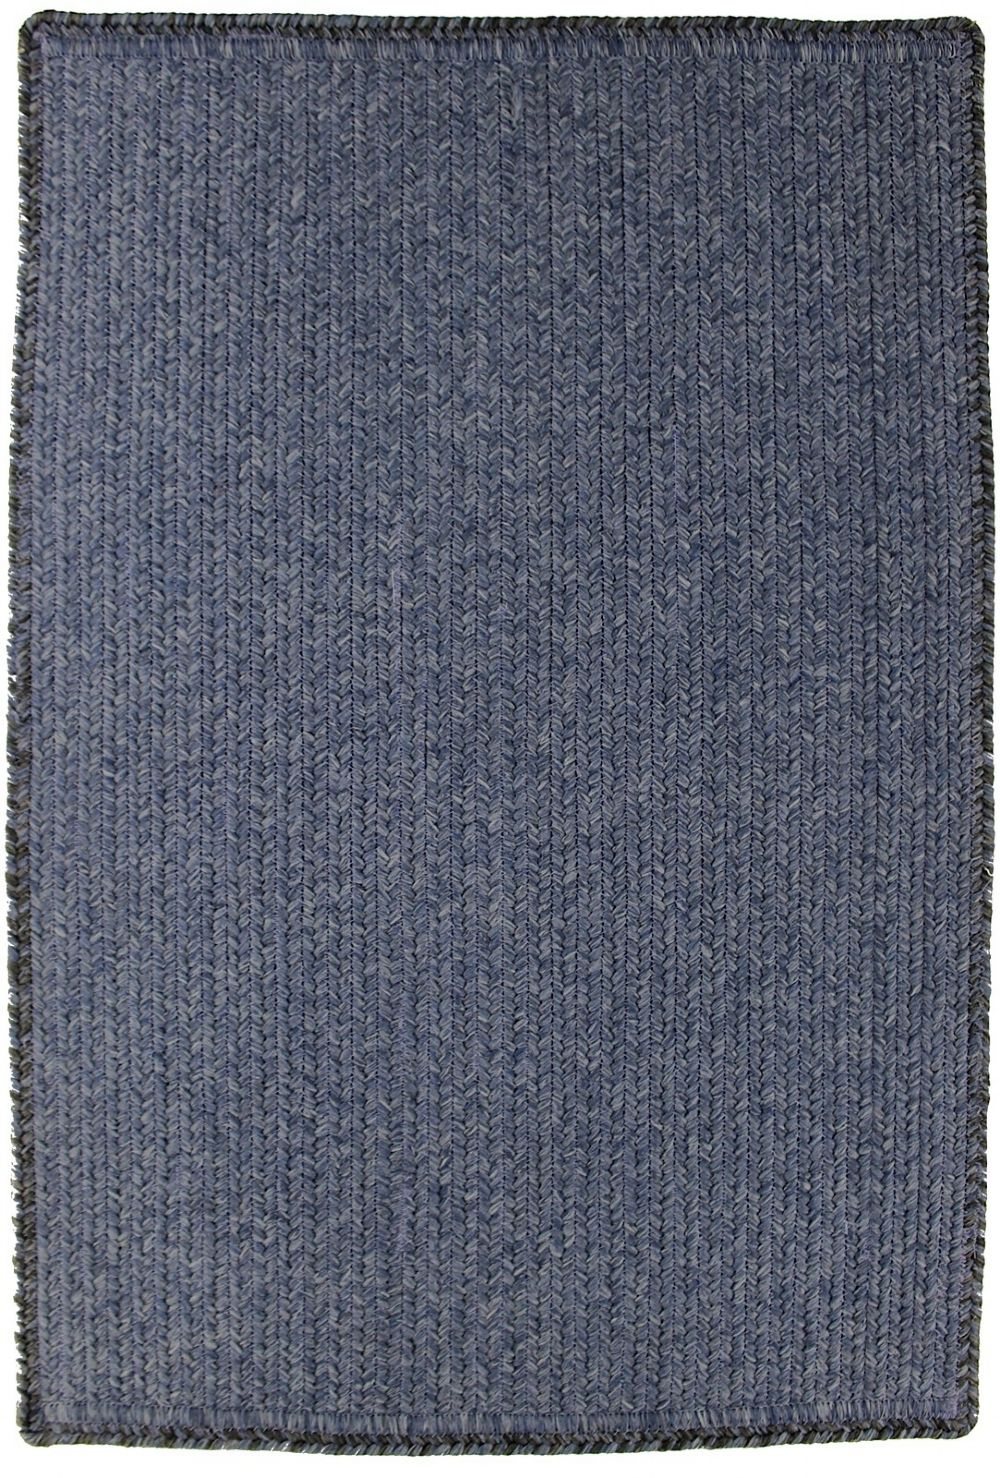 homespice decor moonbeam braided area rug collection